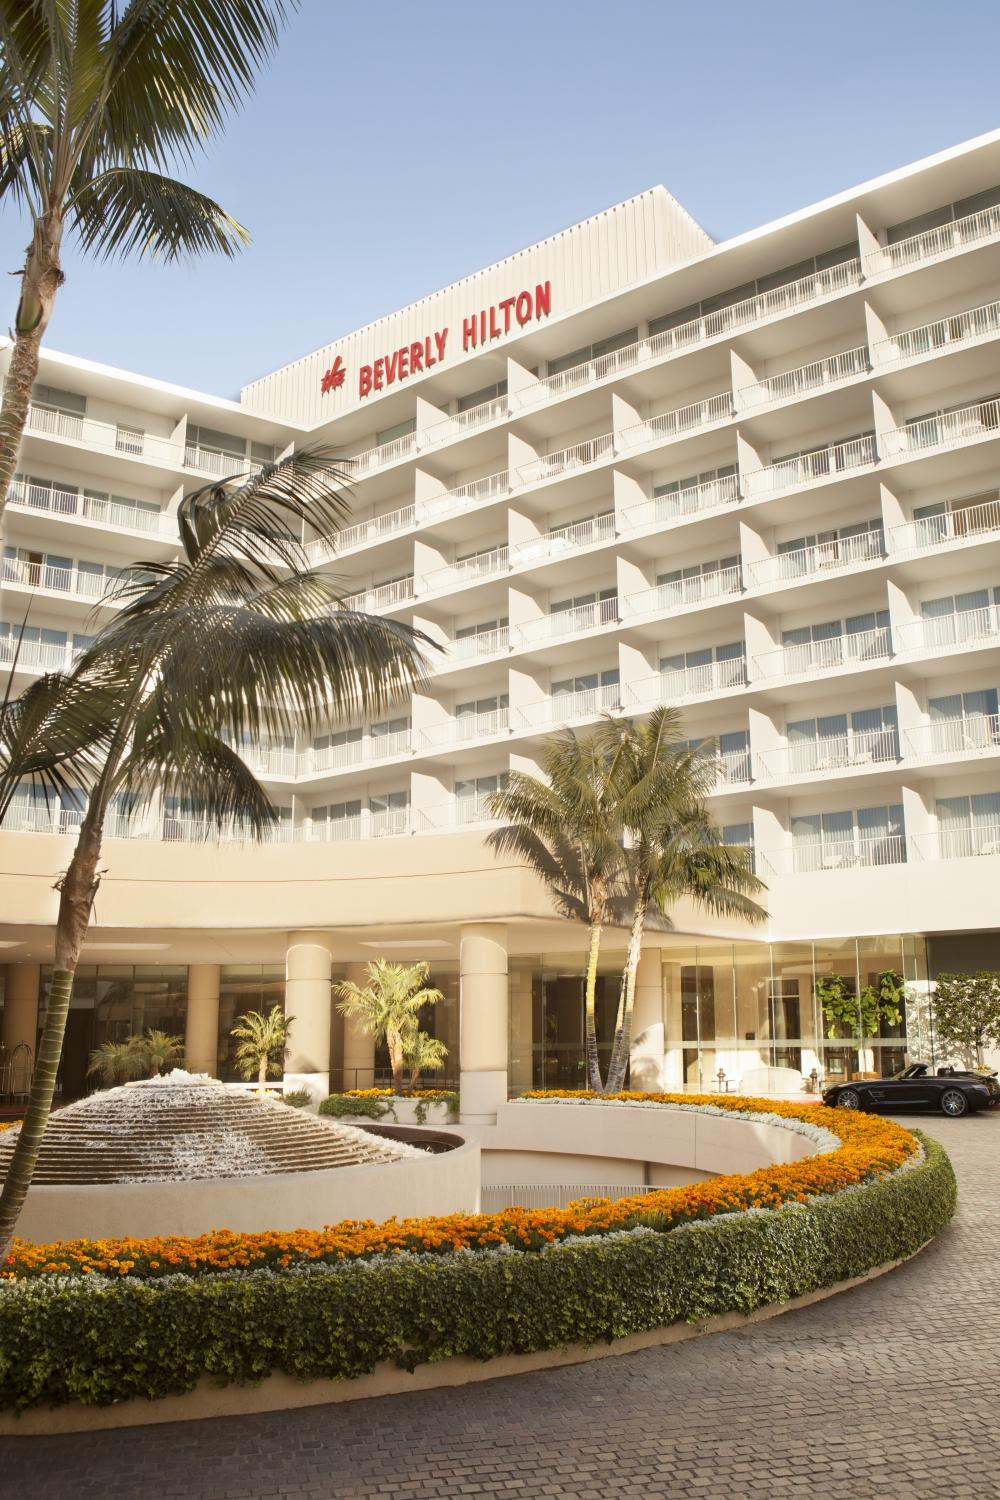 The Beverly Hilton